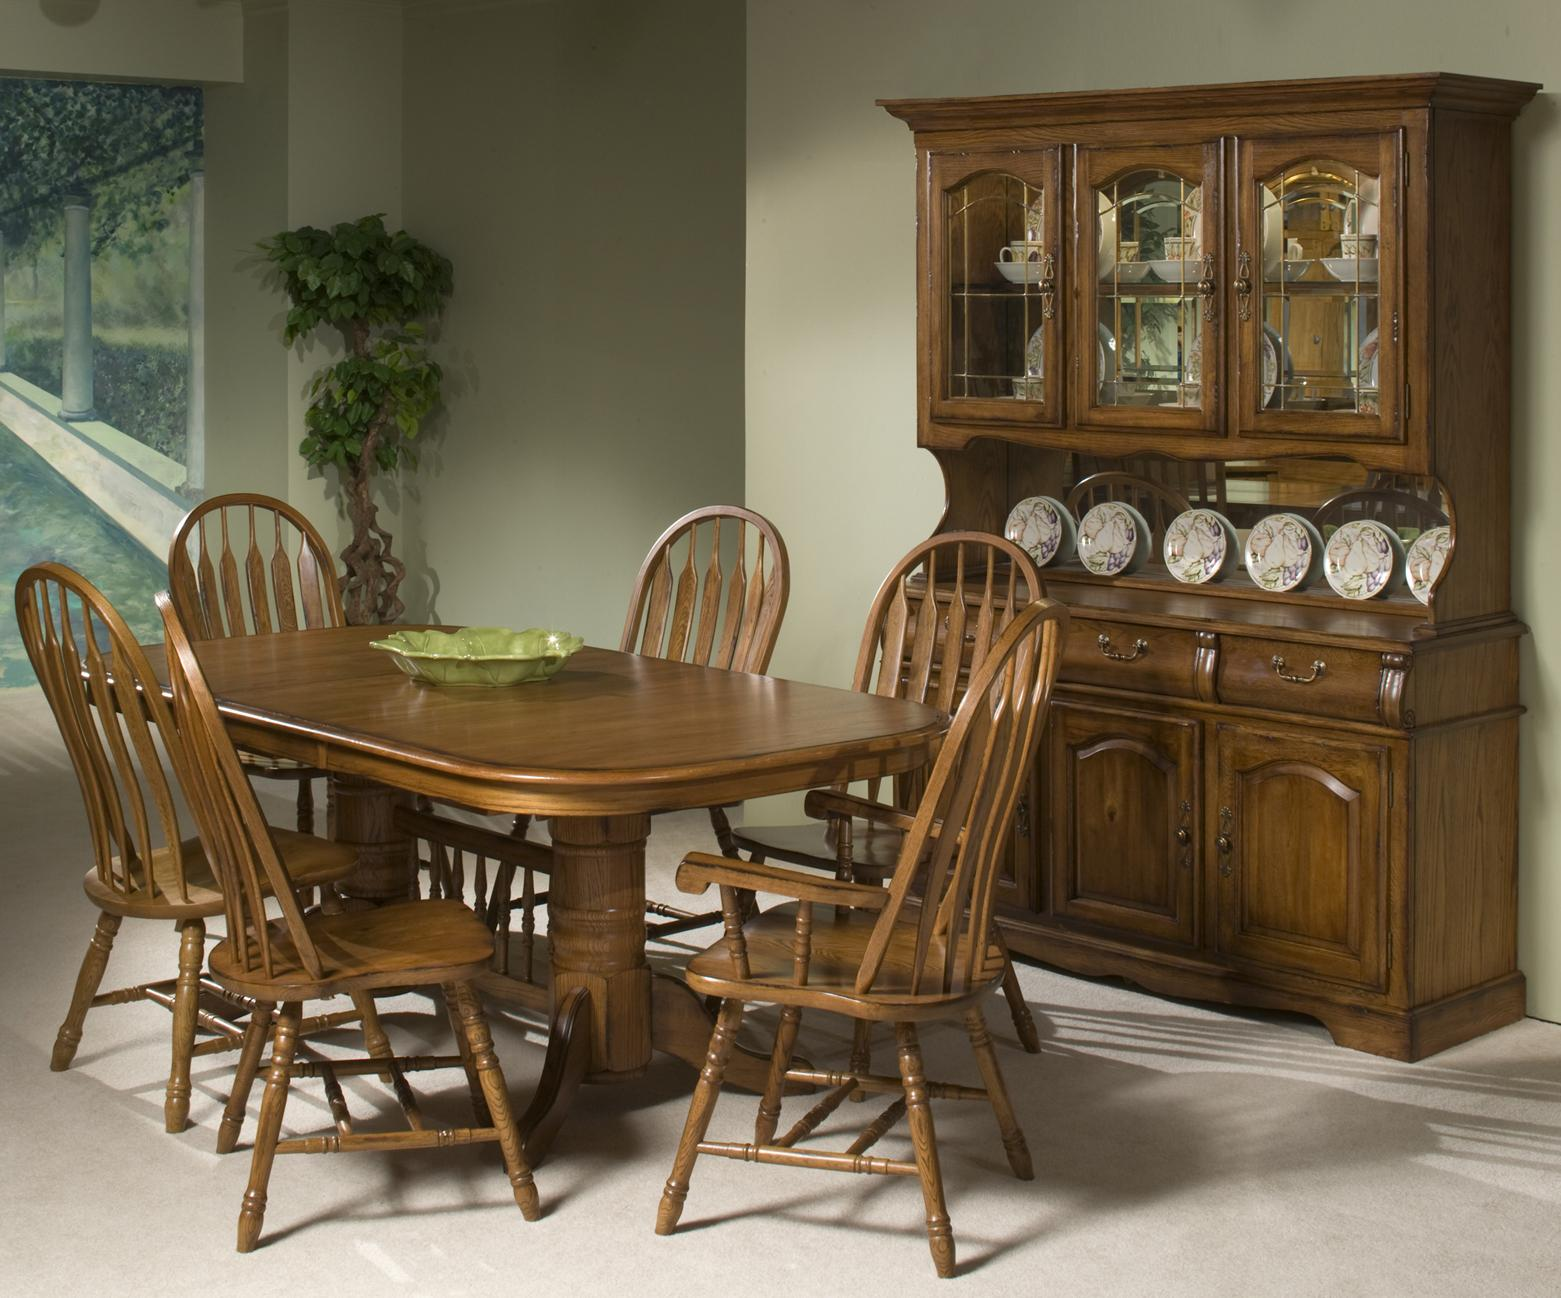 Intercon Classic Oak Formal Dining Room Group - Item Number: CO BRU Dining Room Group 1